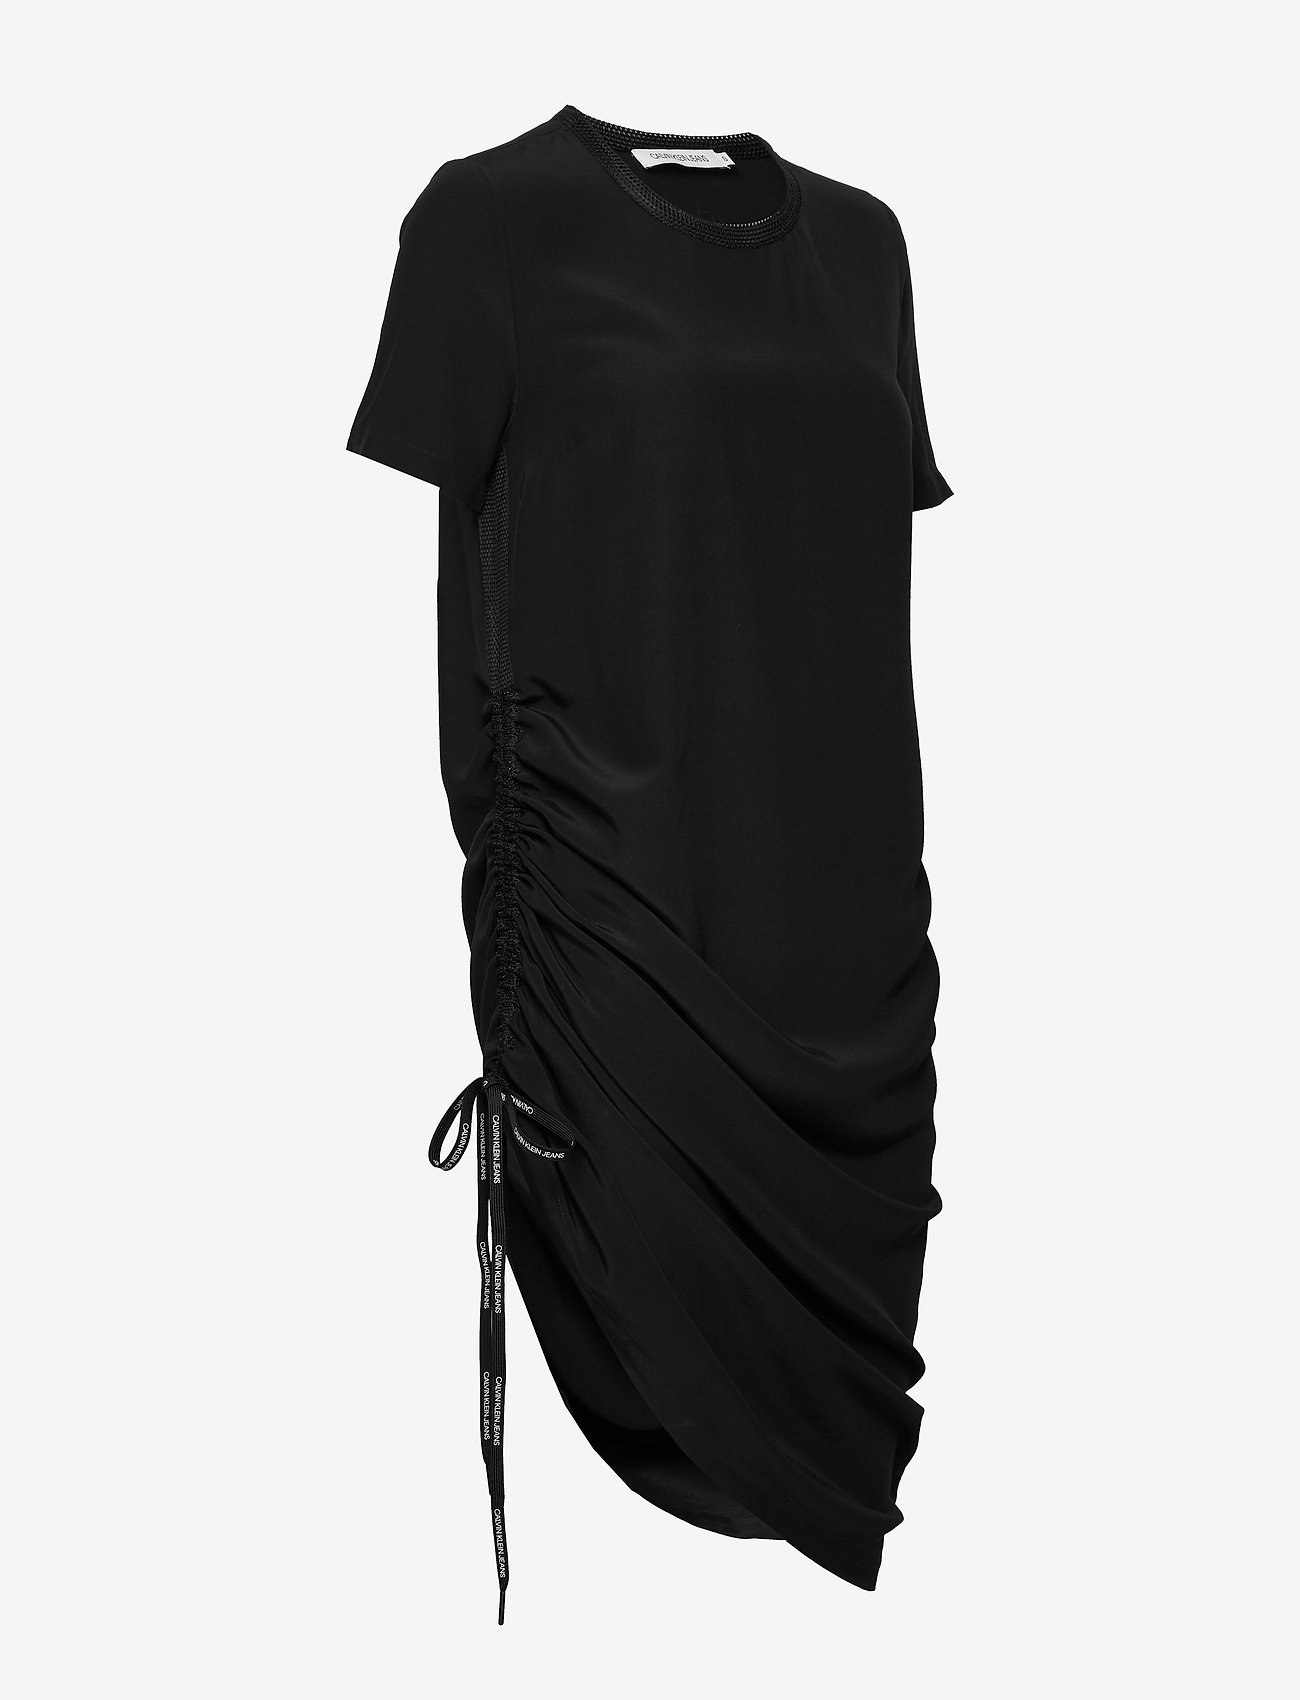 Calvin Klein Jeans SS DRAPEY DRESS WITH - Dresses CK BLACK